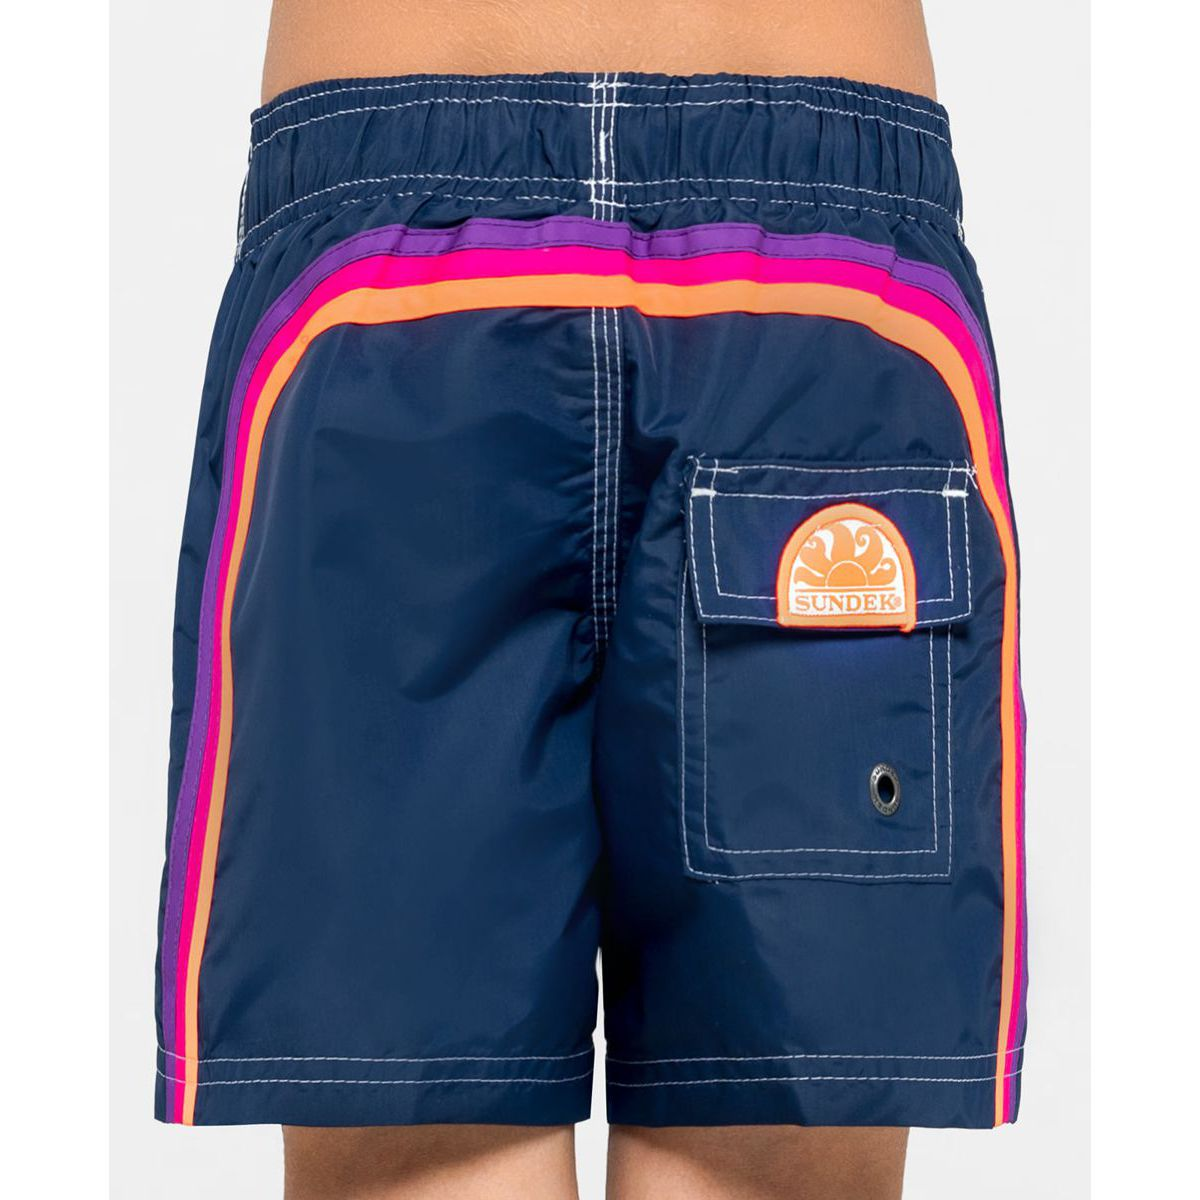 1. Beach shorts 21 Blue 26 Sundek